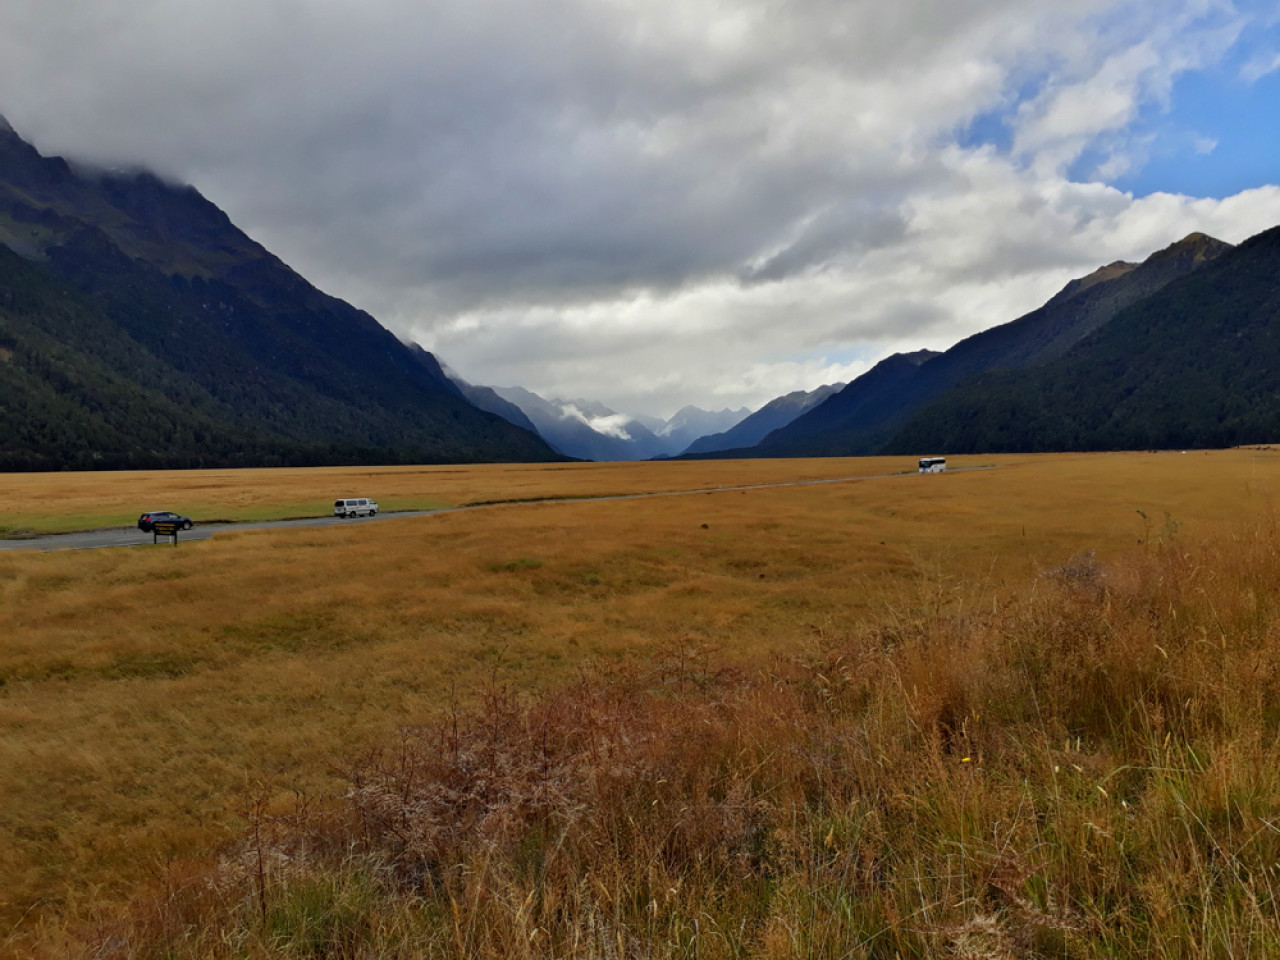 Stopping at Eglinton Valley lookout gives you a pretty good idea of this vast landscape.